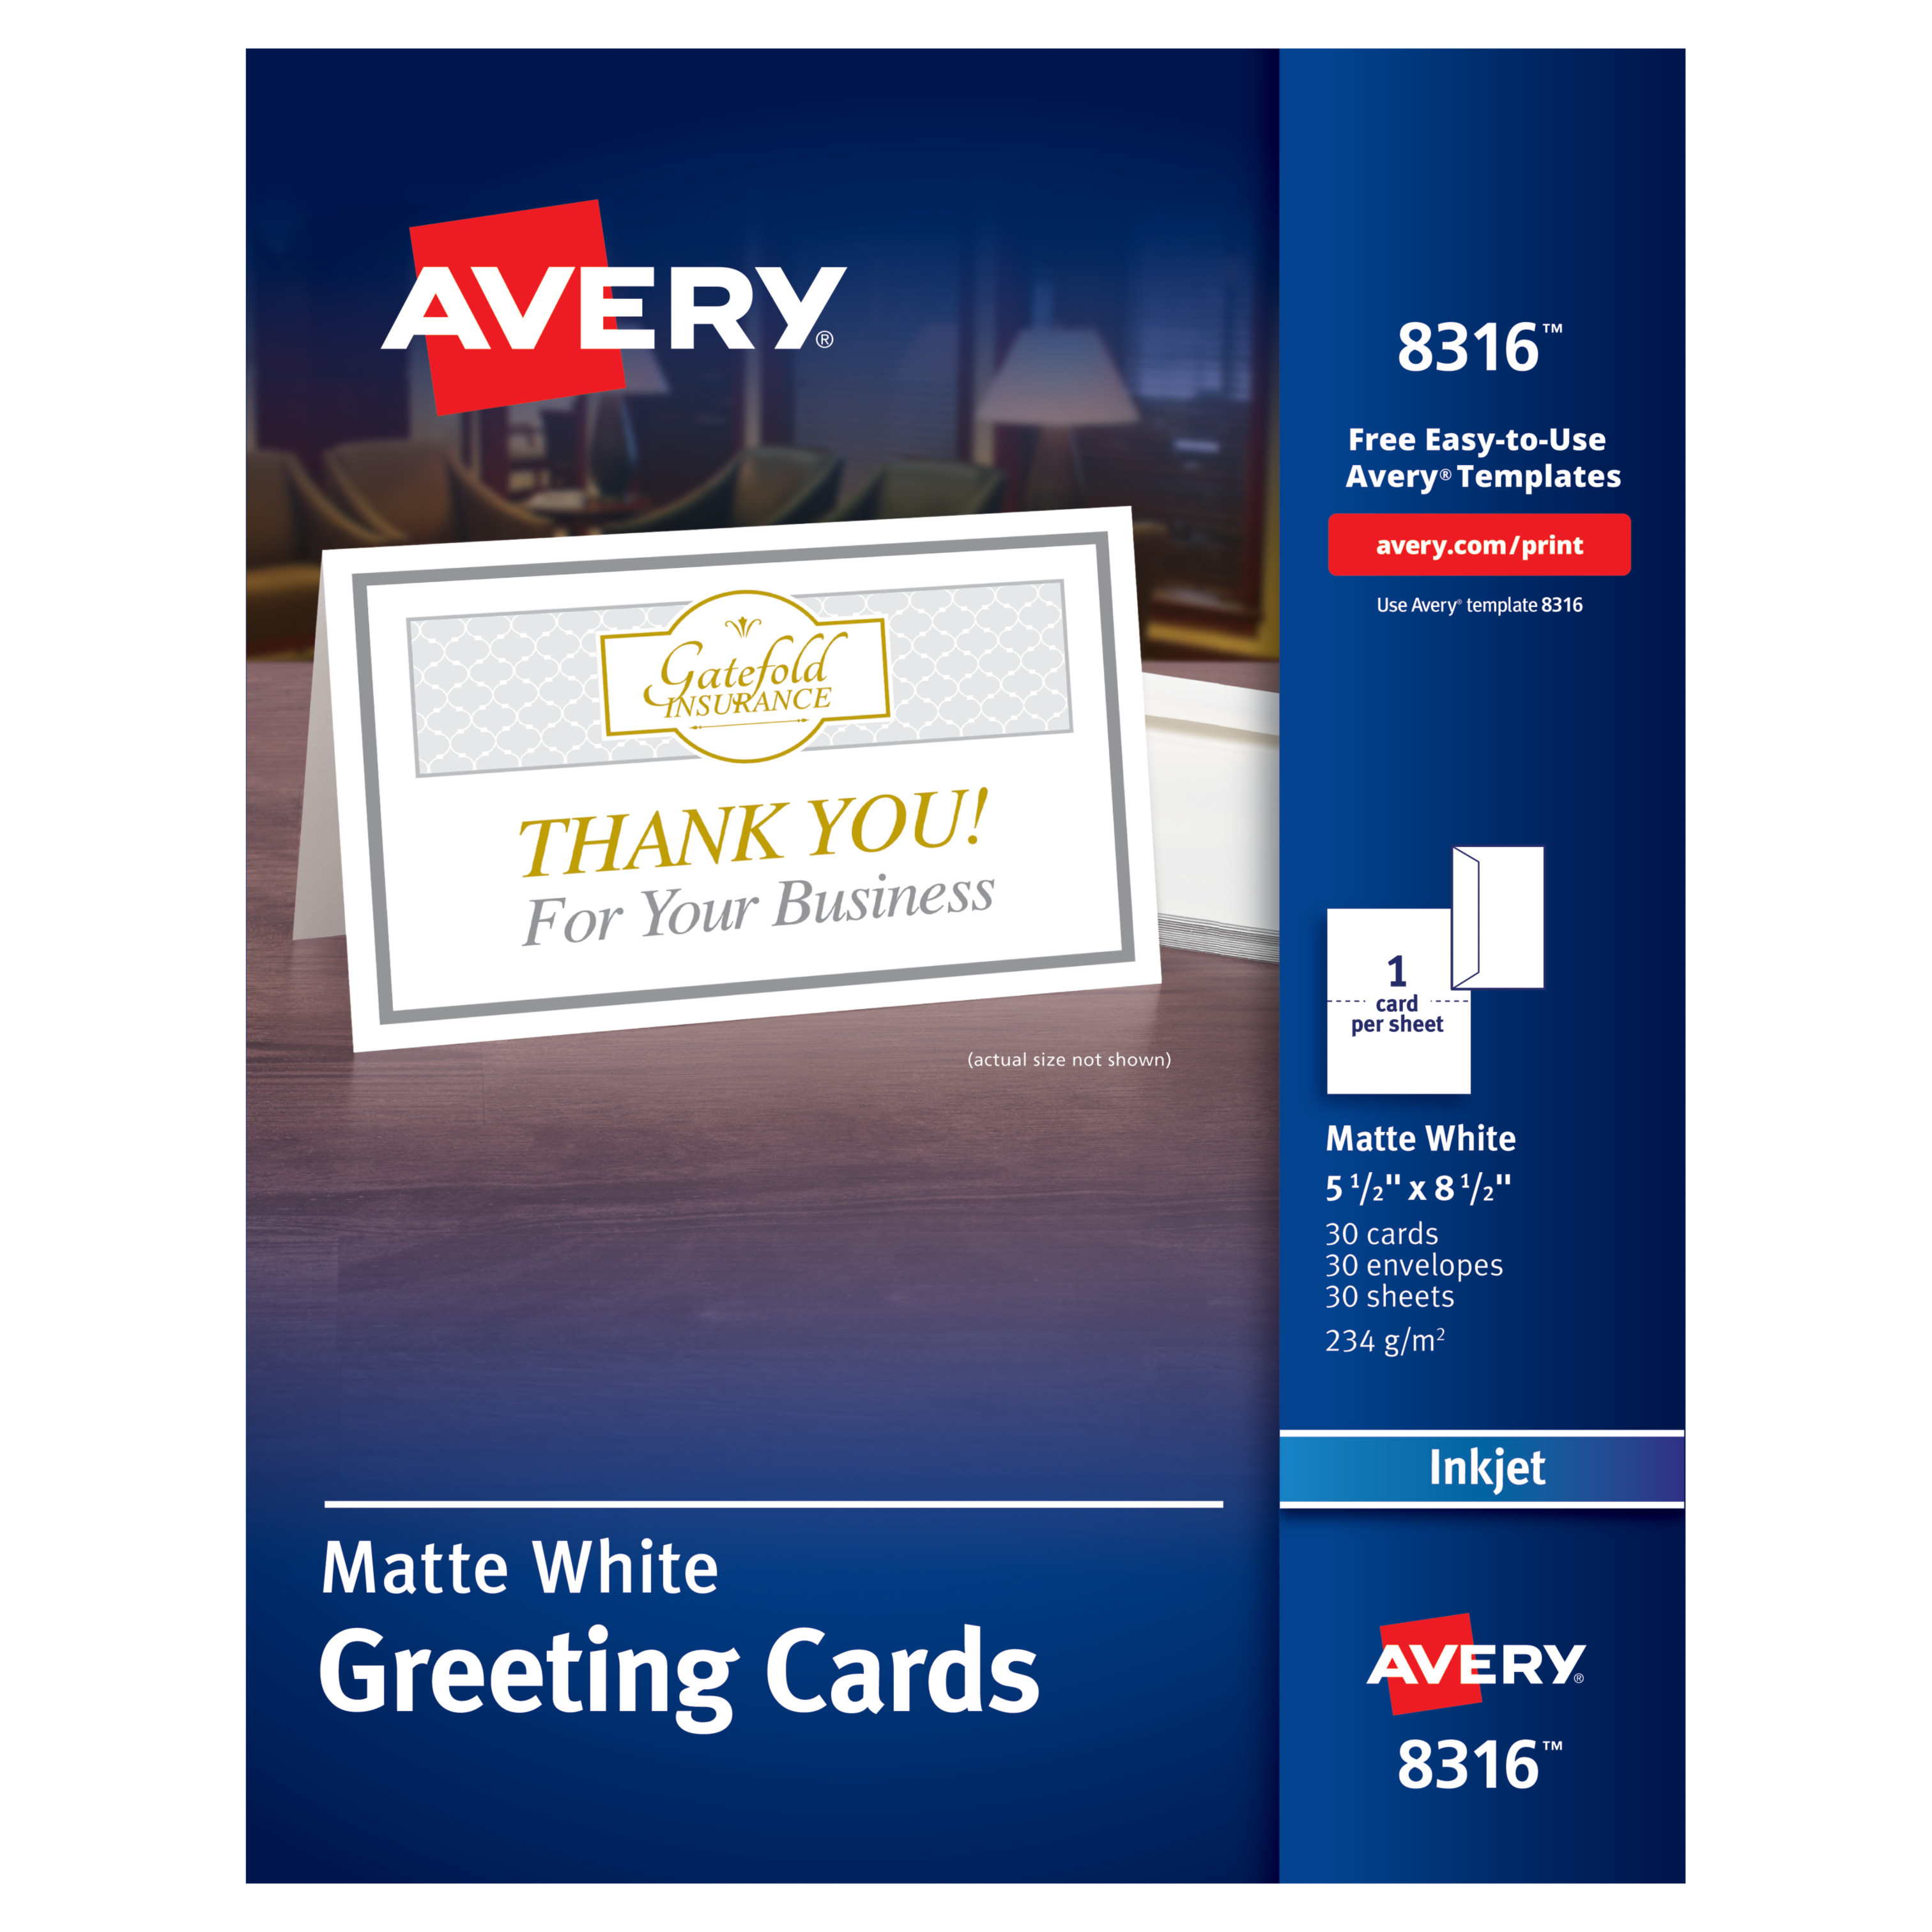 Avery Half-Fold Greeting Cards, Inkjet, 5 1/2 x 8 1/2, Matte White, 30/Box w/Envelopes